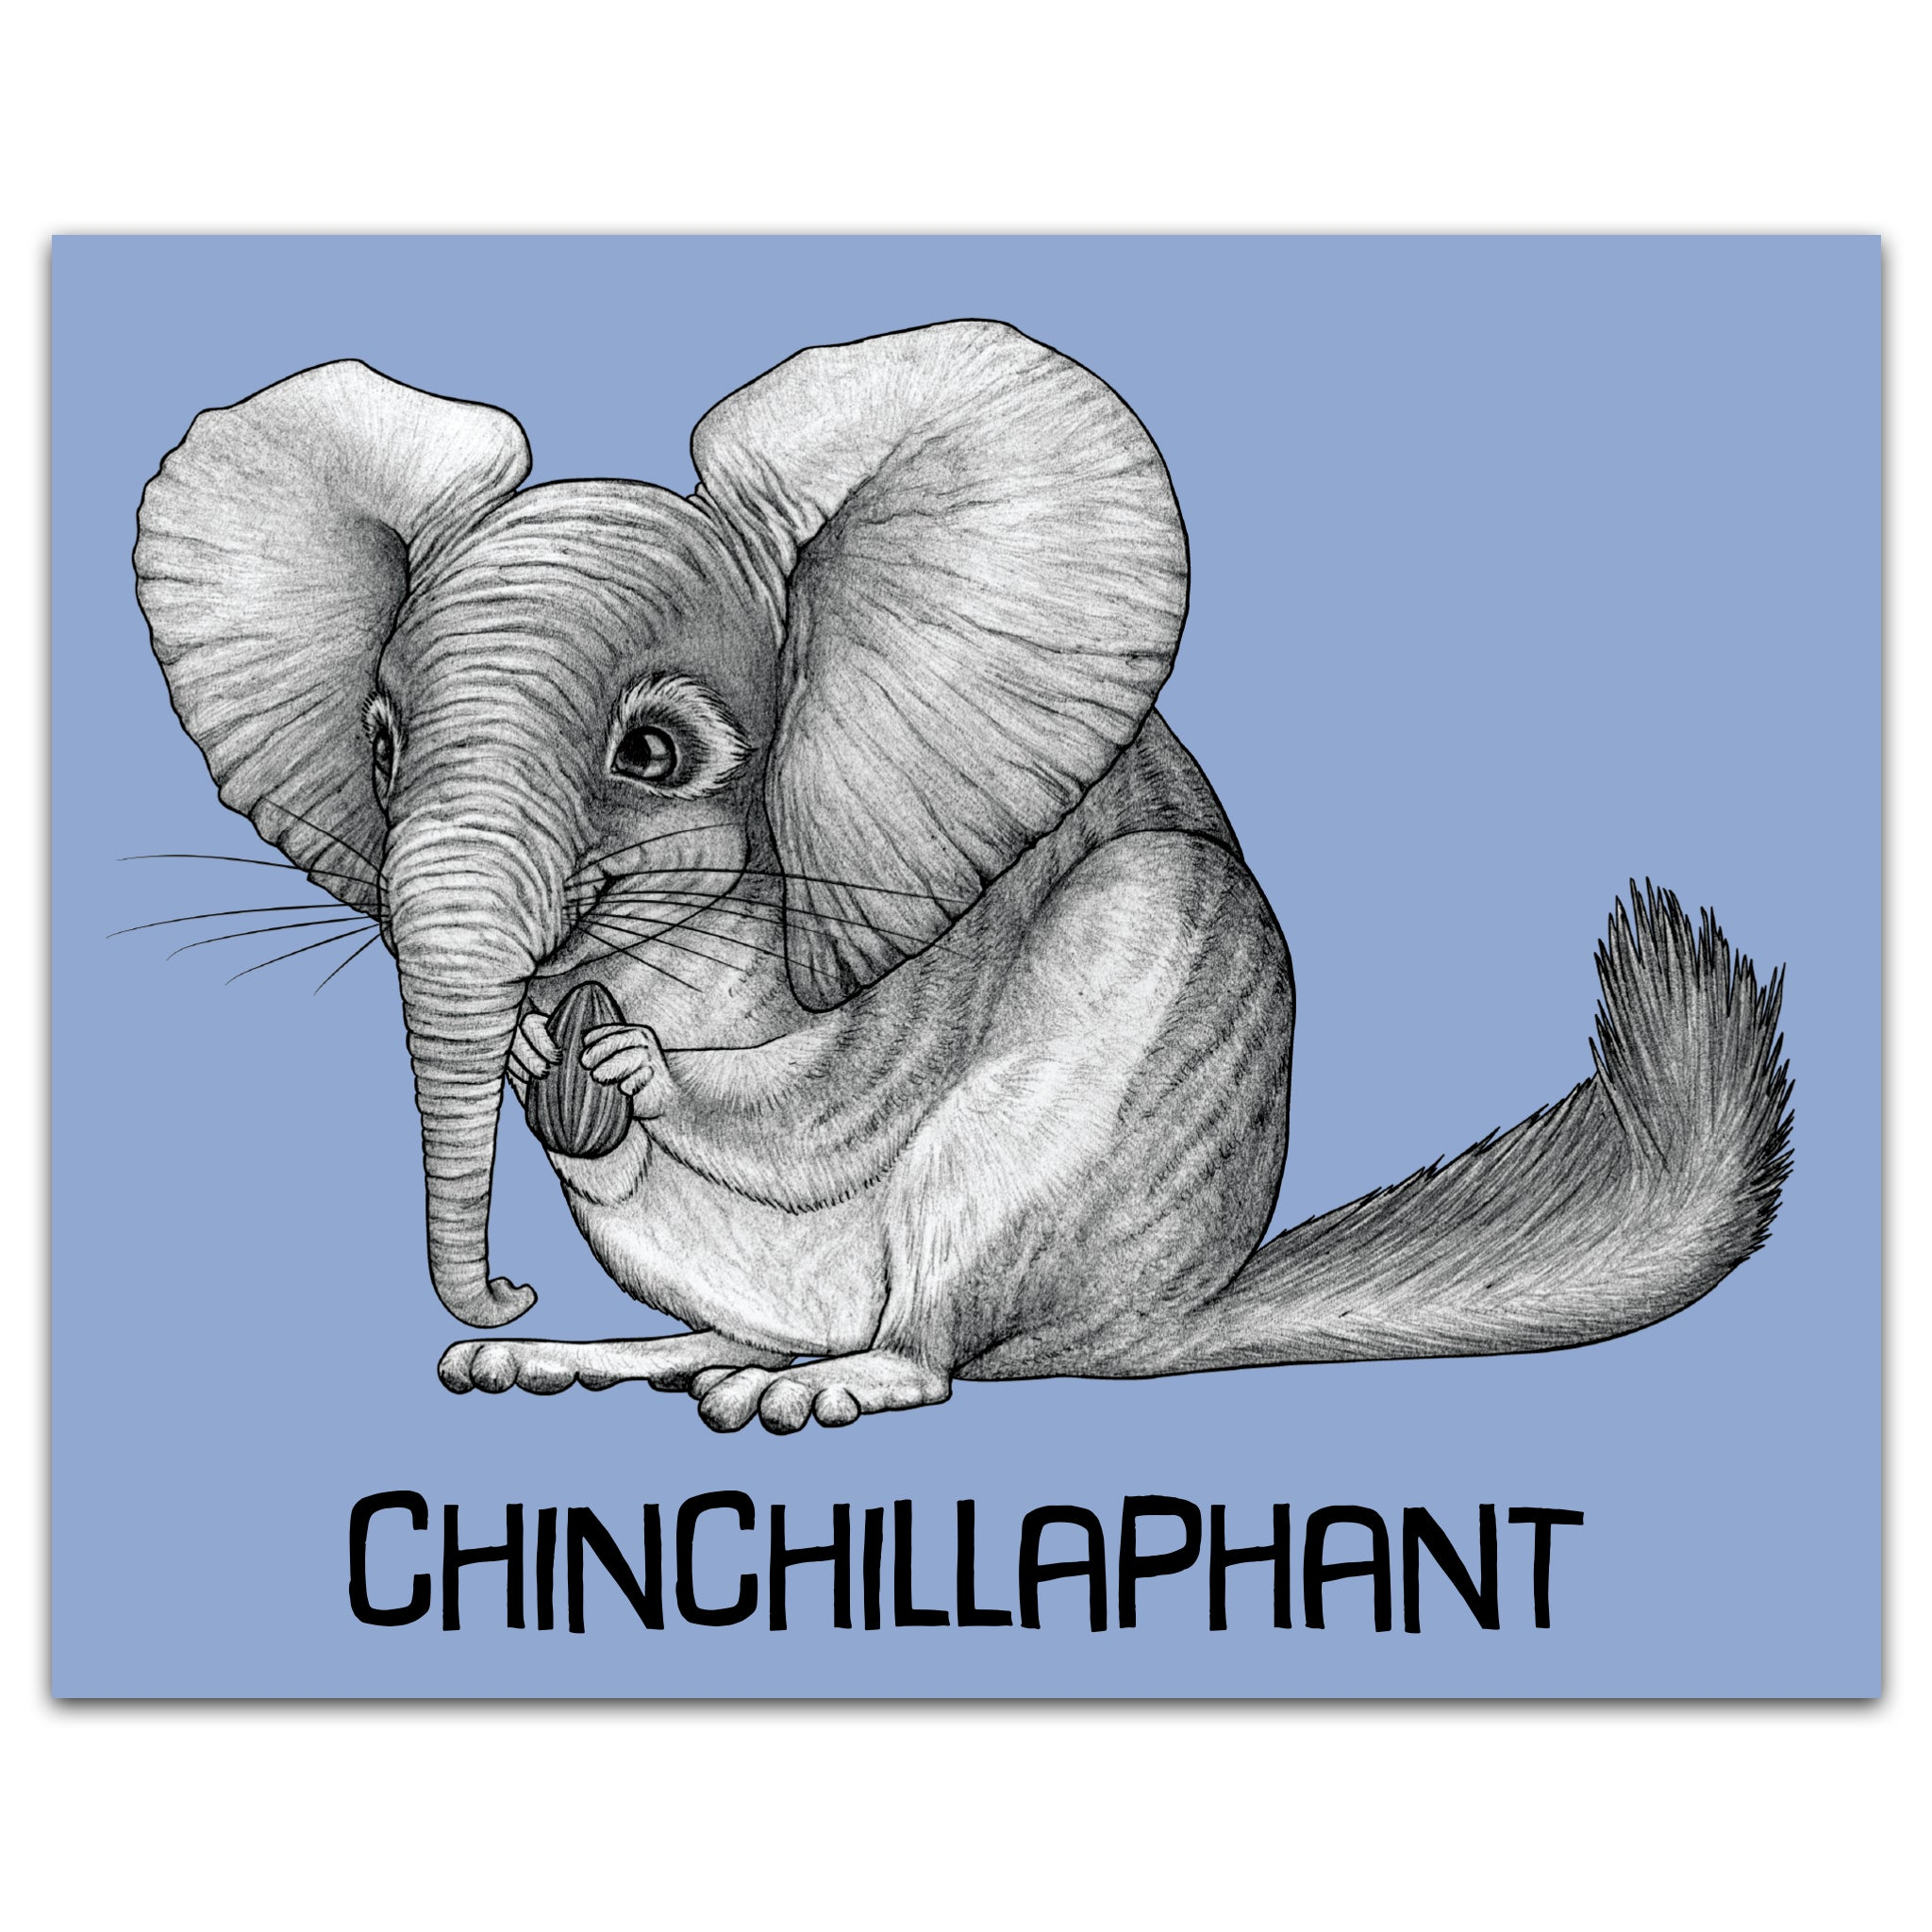 "Chinchillaphant 8x10"" Art Print"